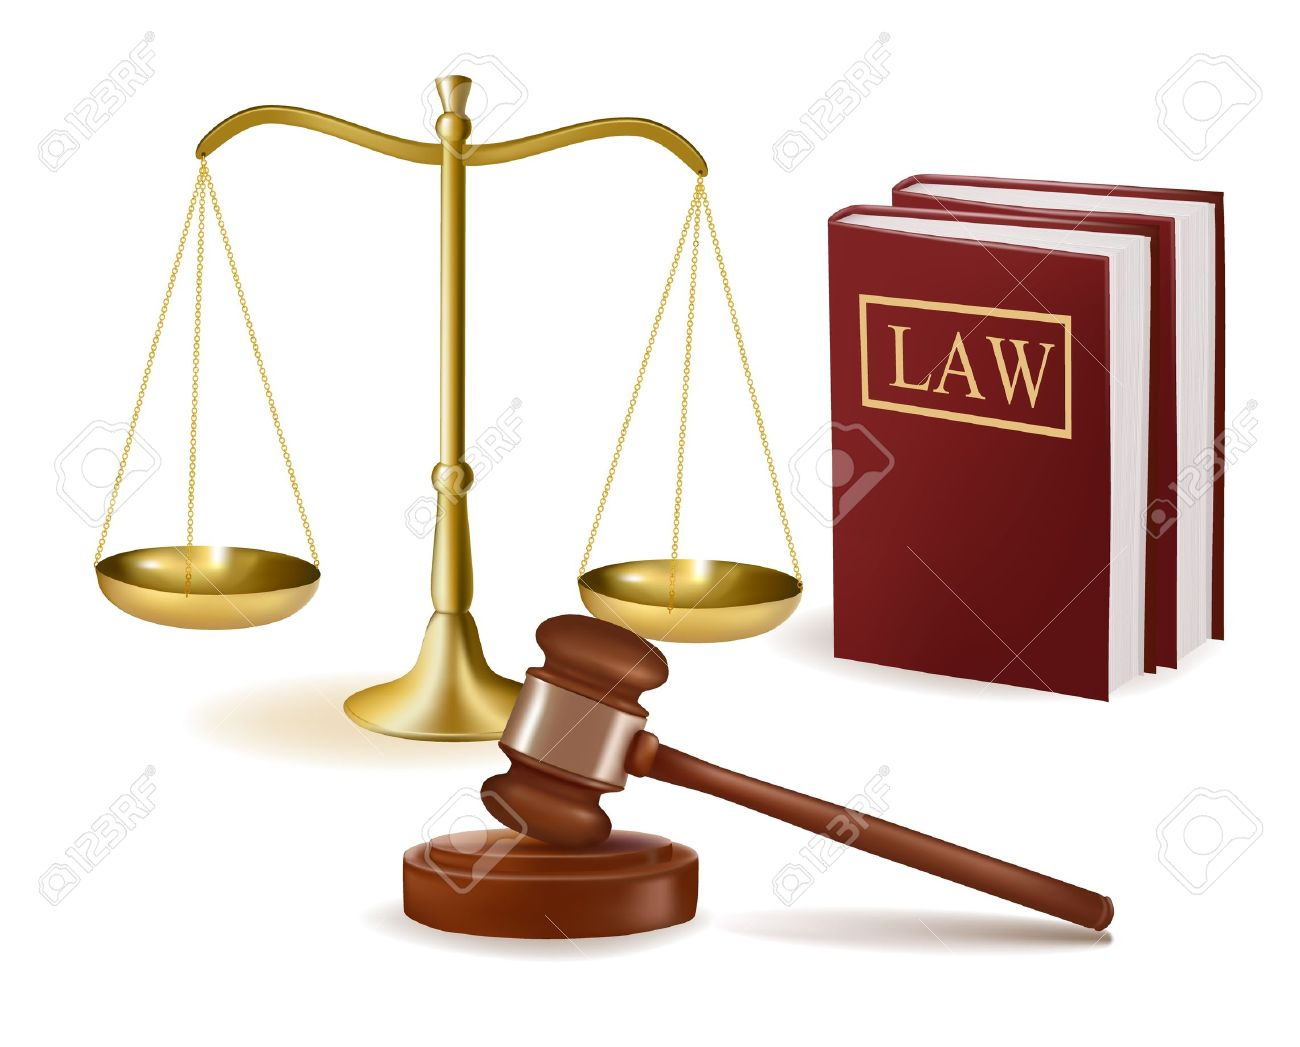 LA LOI ET LE JUGEMENT/ THE LAW AND THE JUDGEMENT